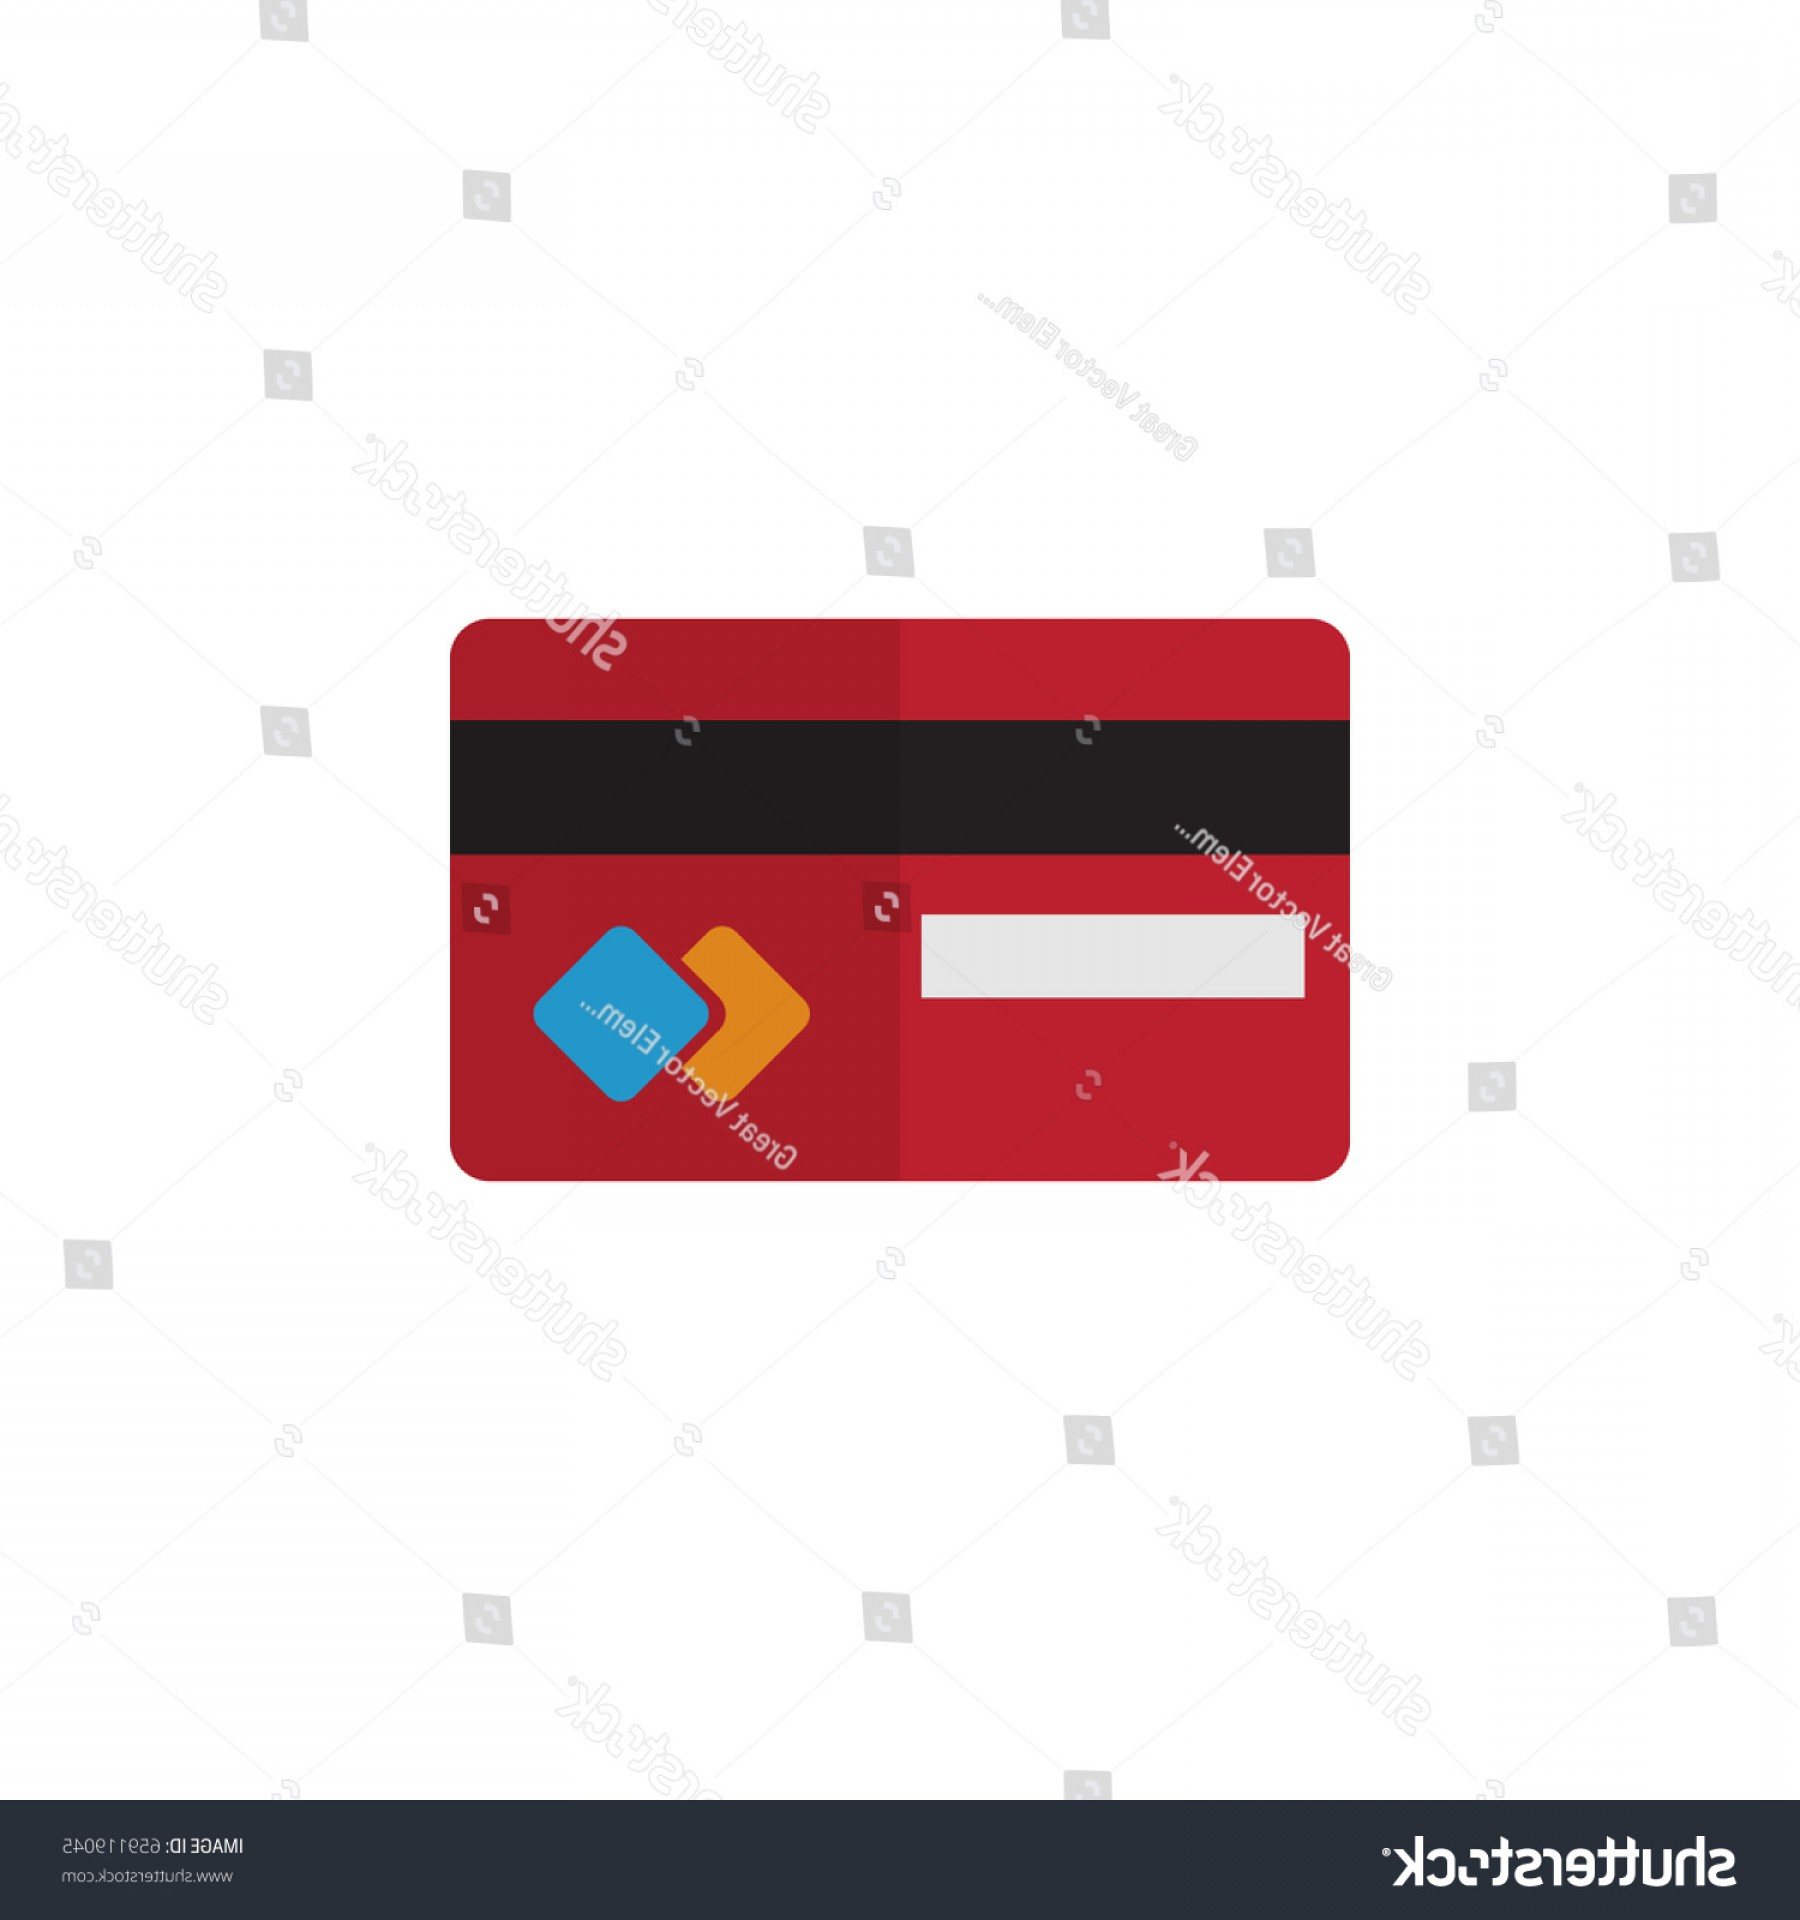 MasterCard Credit Card Logo Vector: Isolated Credit Card Flat Icon Payment